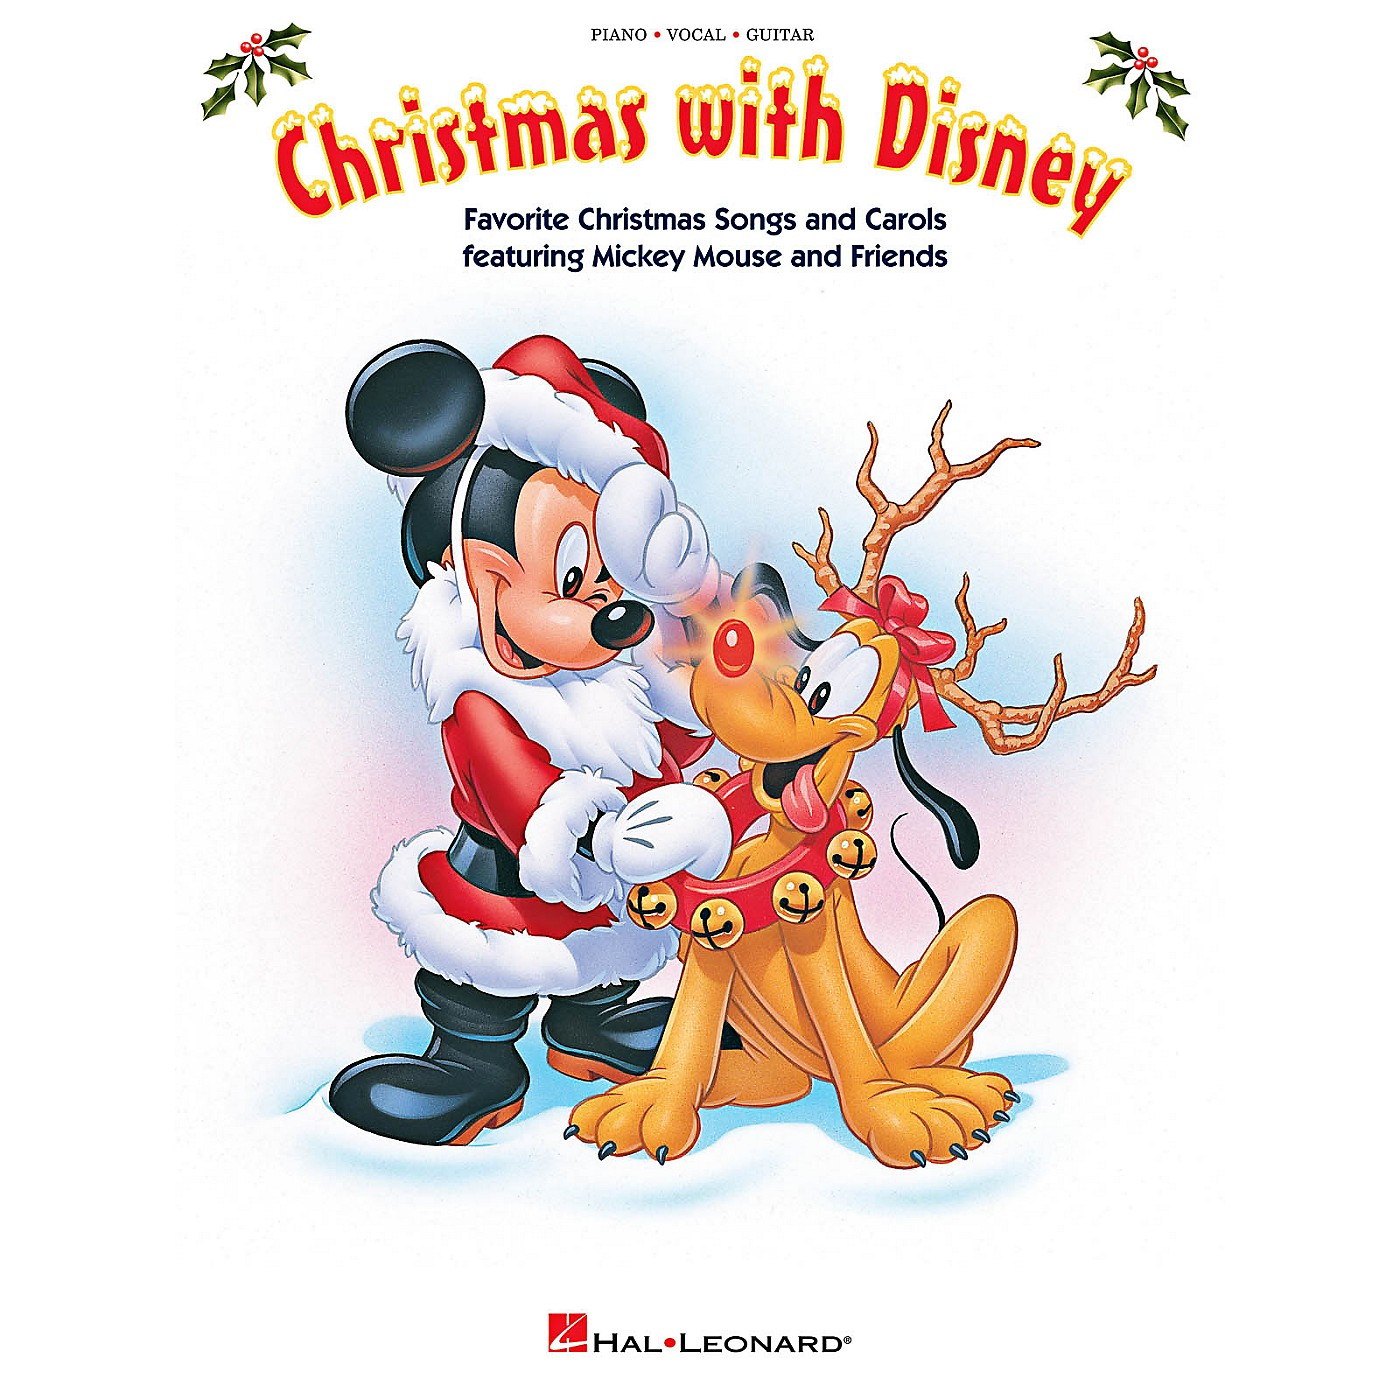 Hal Leonard Christmas With Disney - Piano/Vocal/Guitar Songbook thumbnail